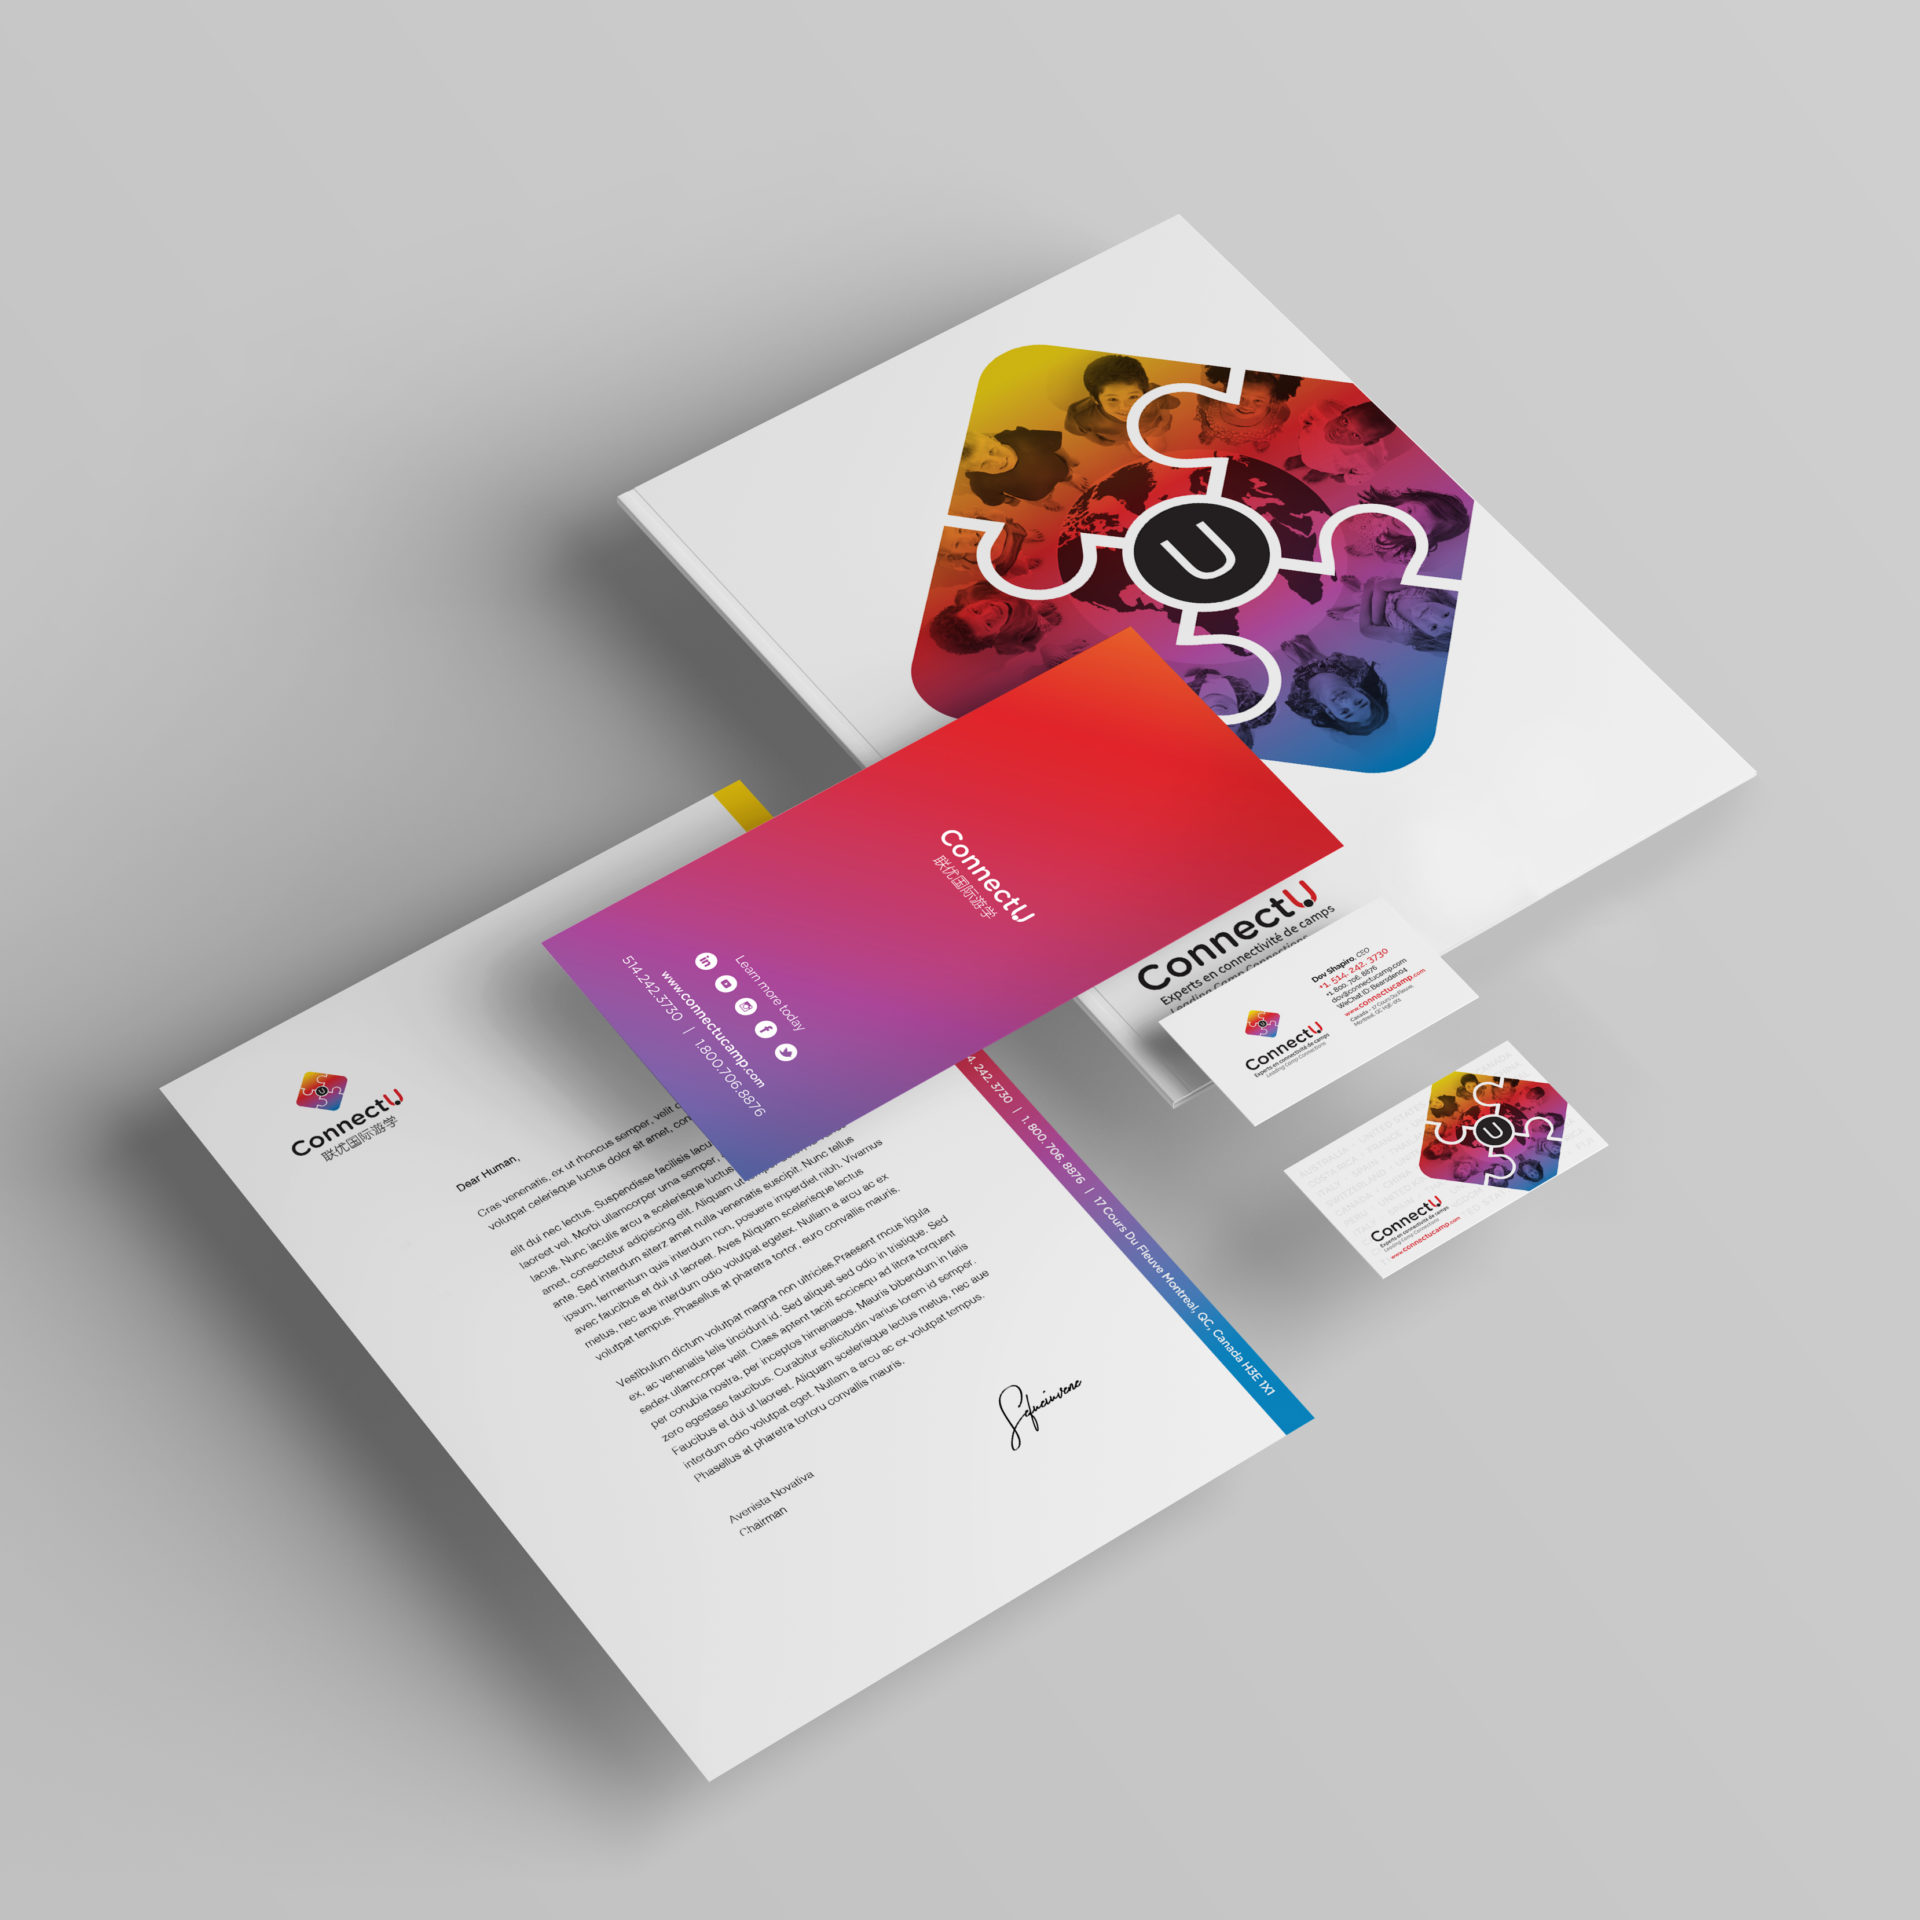 Stationery design with vibrant colors gradient - blue, red, purple, yellow - children of multicultural backgrounds around a globe.